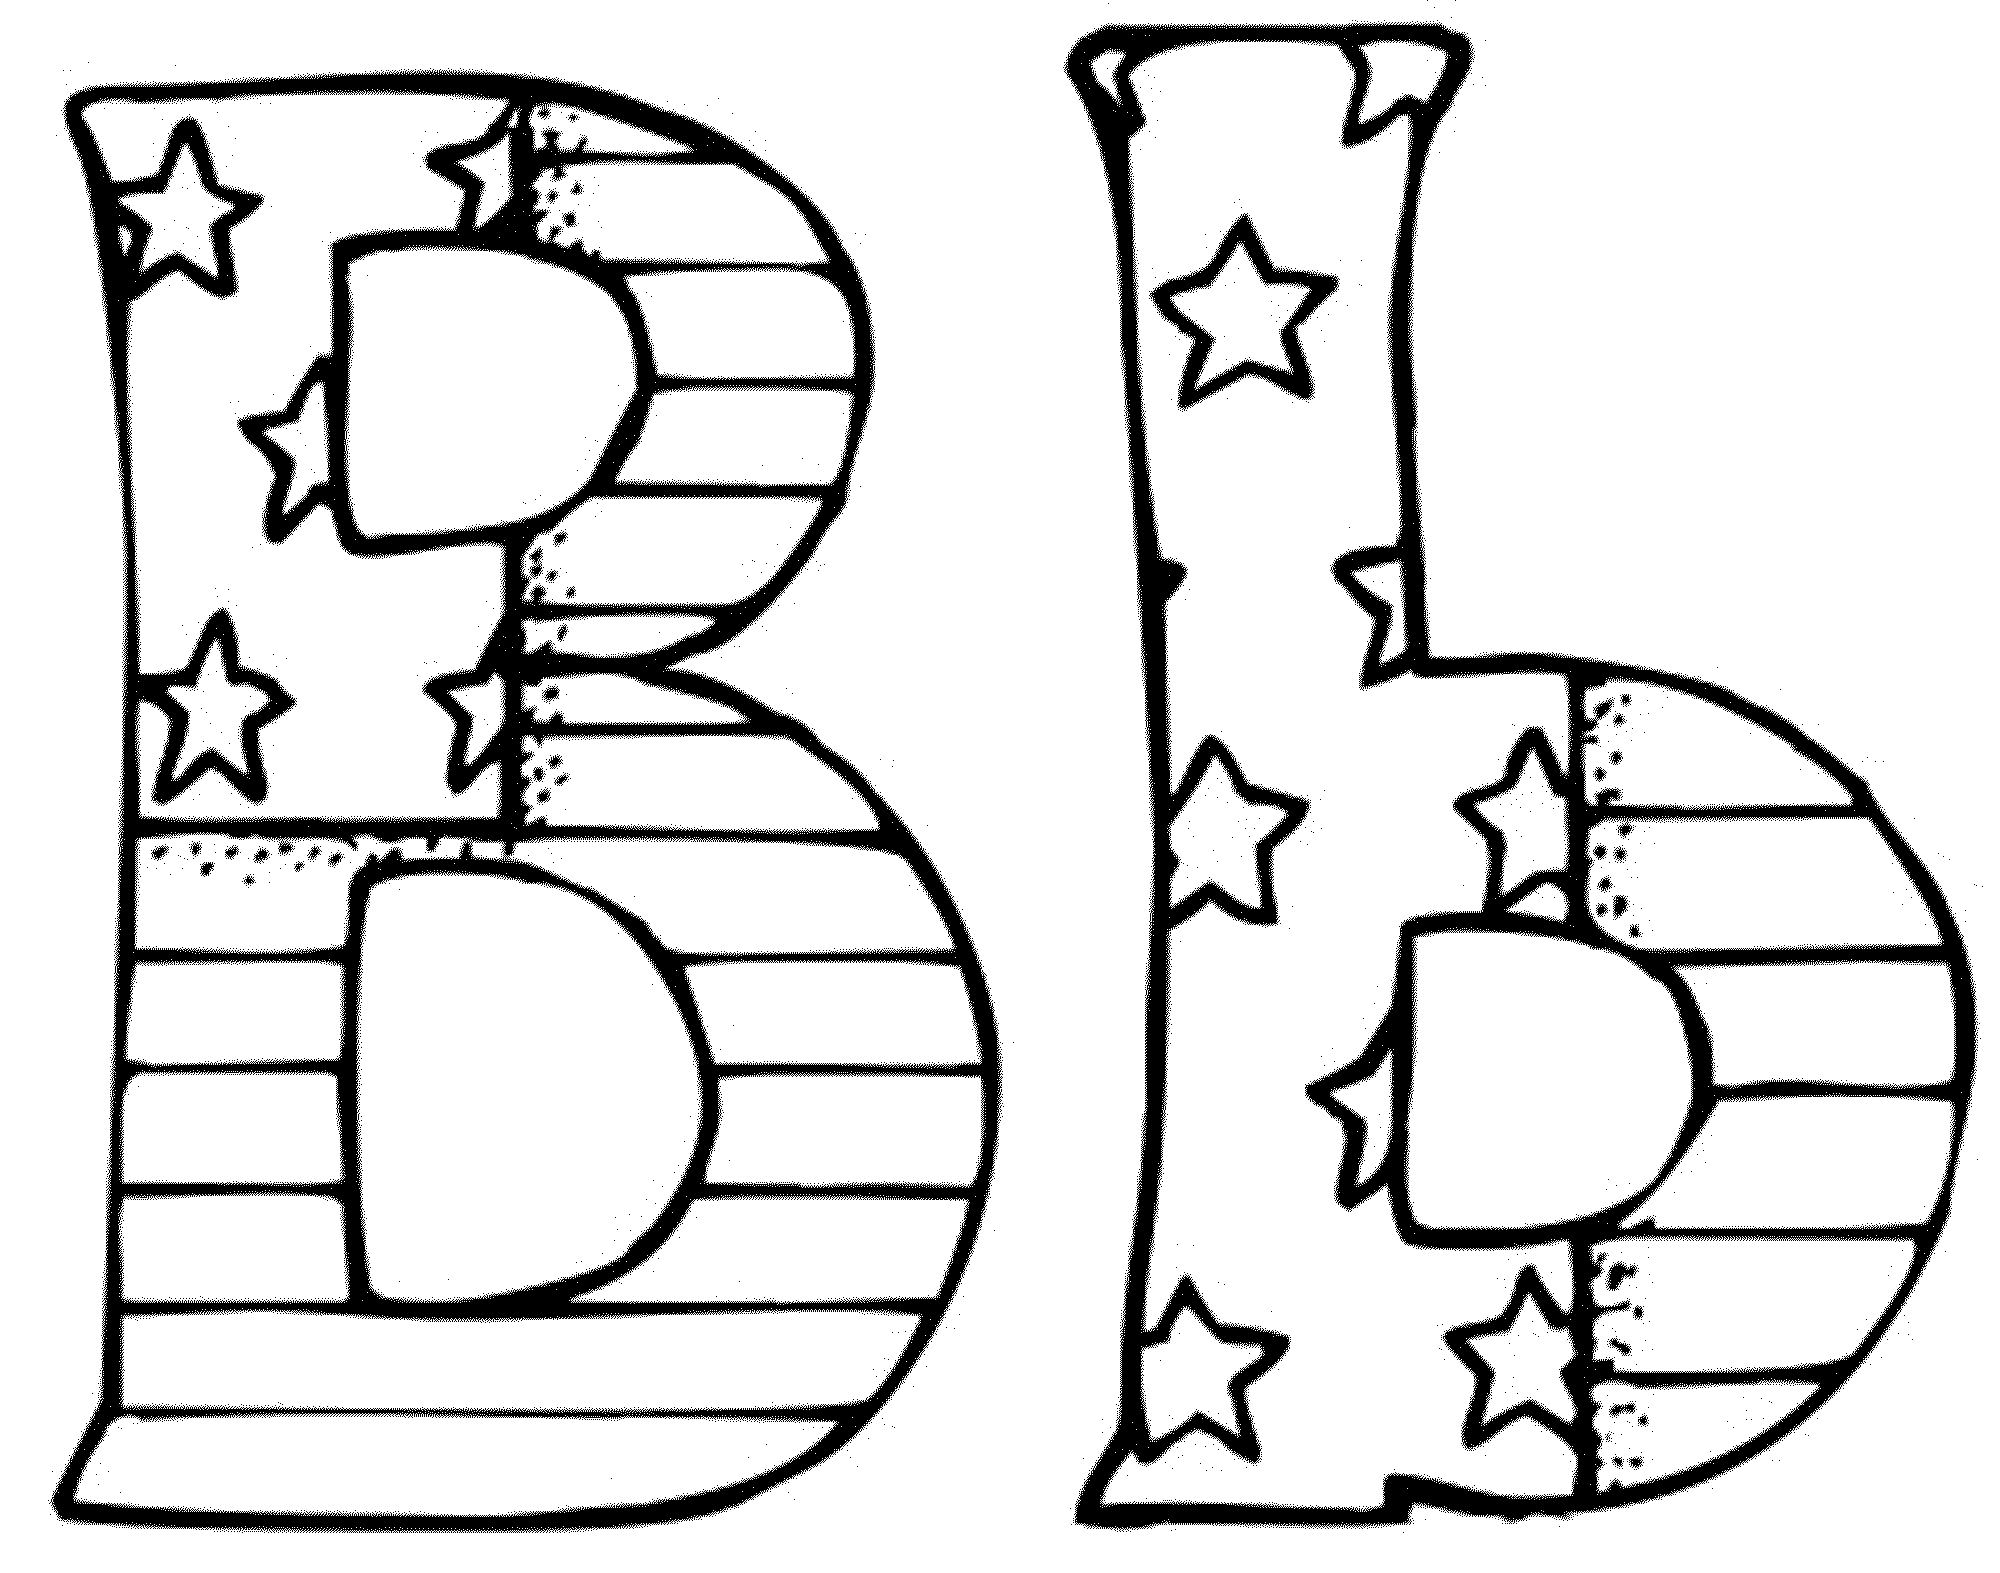 alphabet b coloring pages letter b is for bike super coloring preschool coloring pages alphabet b coloring